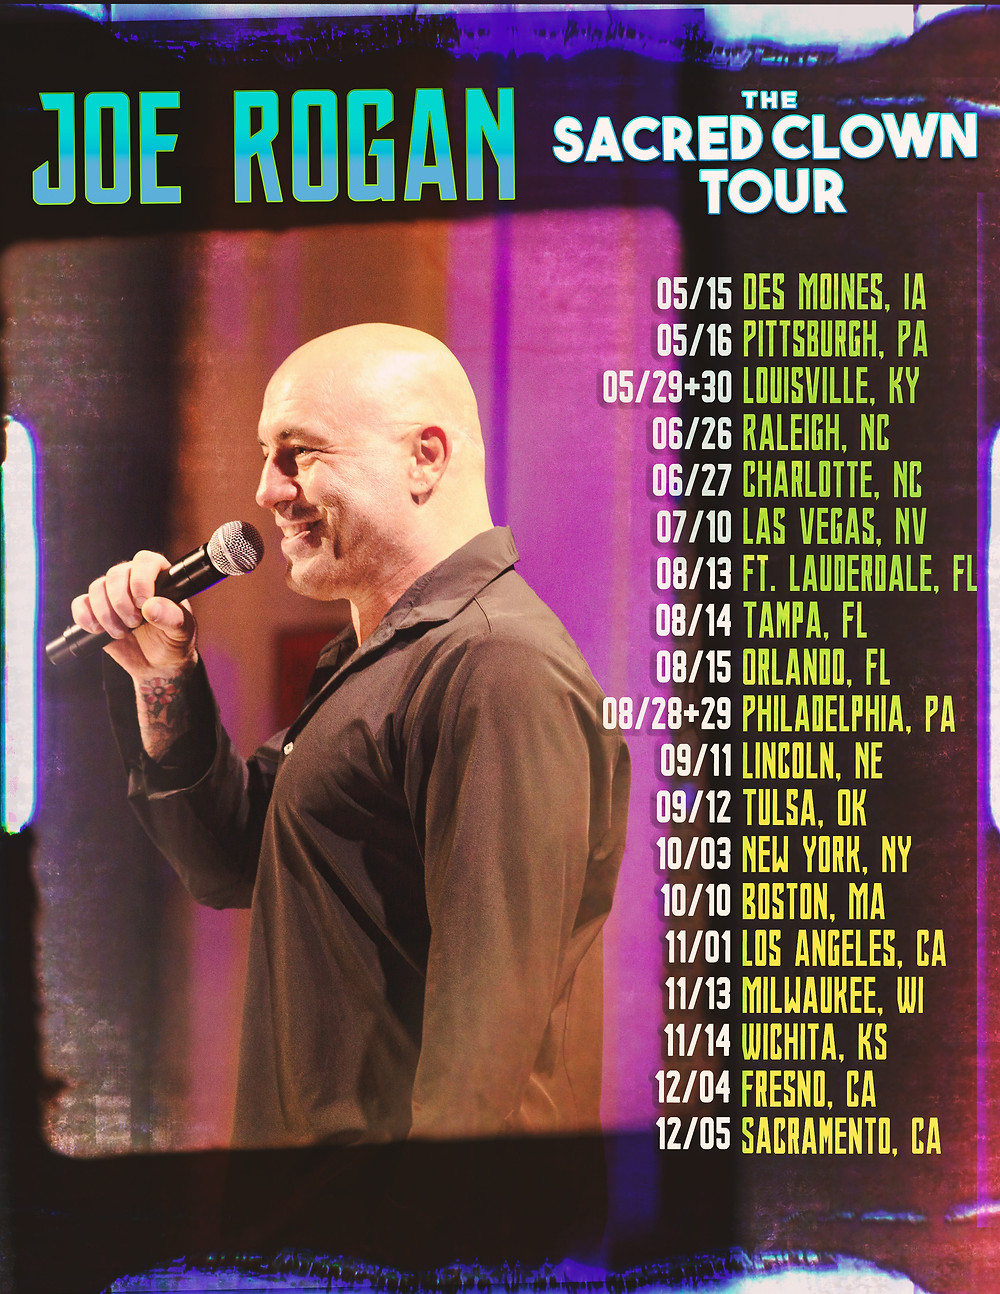 Joe Rogan Sacred Clown Tour Poster by Drastic Graphics